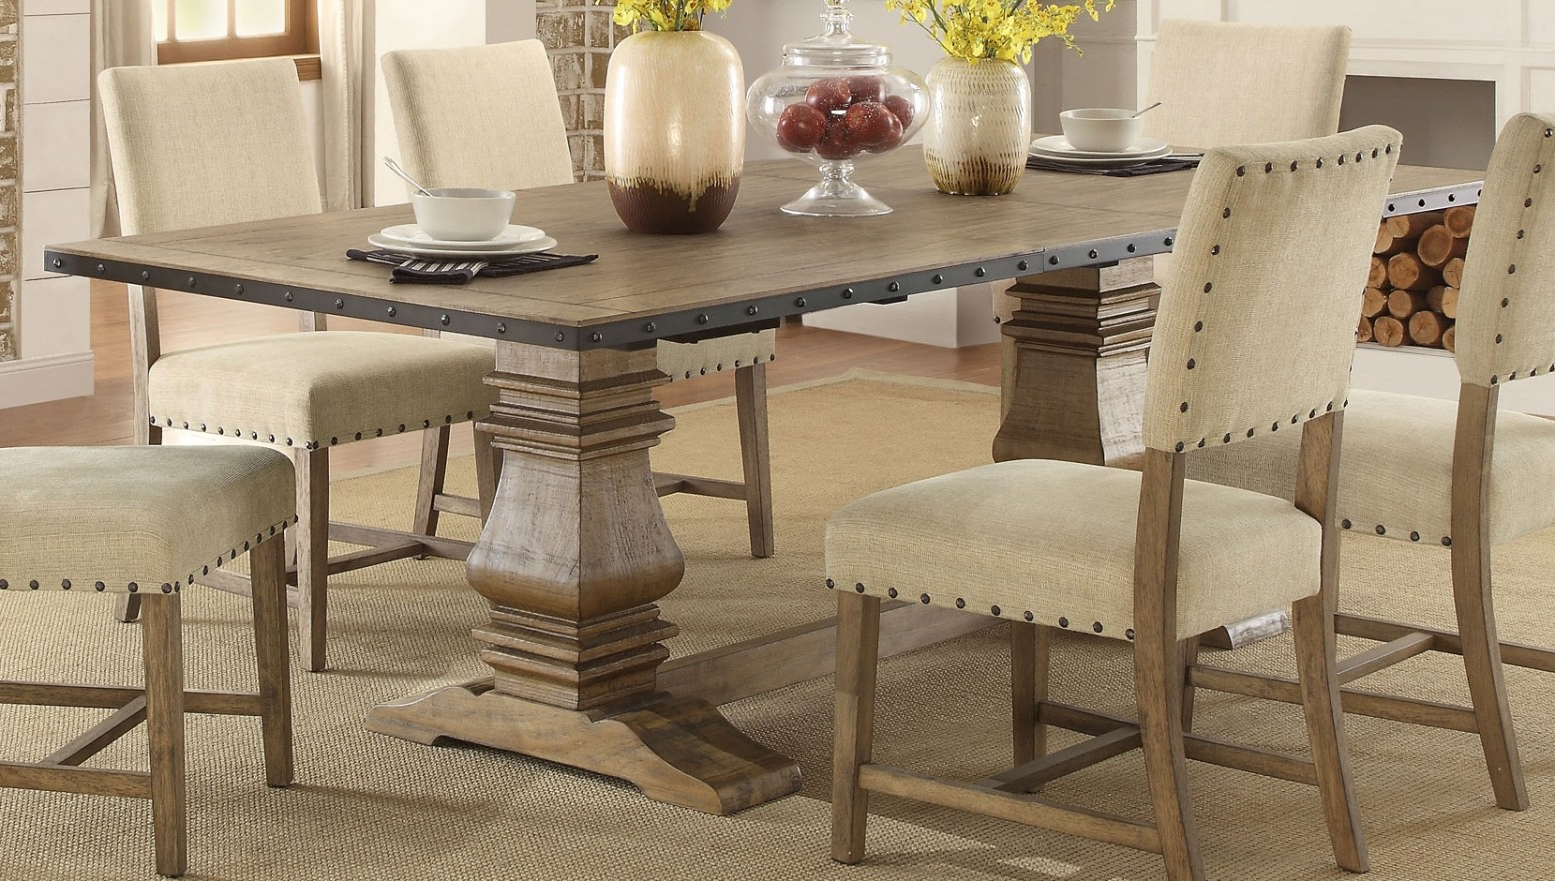 Preferred Veltry Transitional Rectangular Wood Dining Table Pertaining To Transitional Rectangular Dining Tables (View 5 of 30)